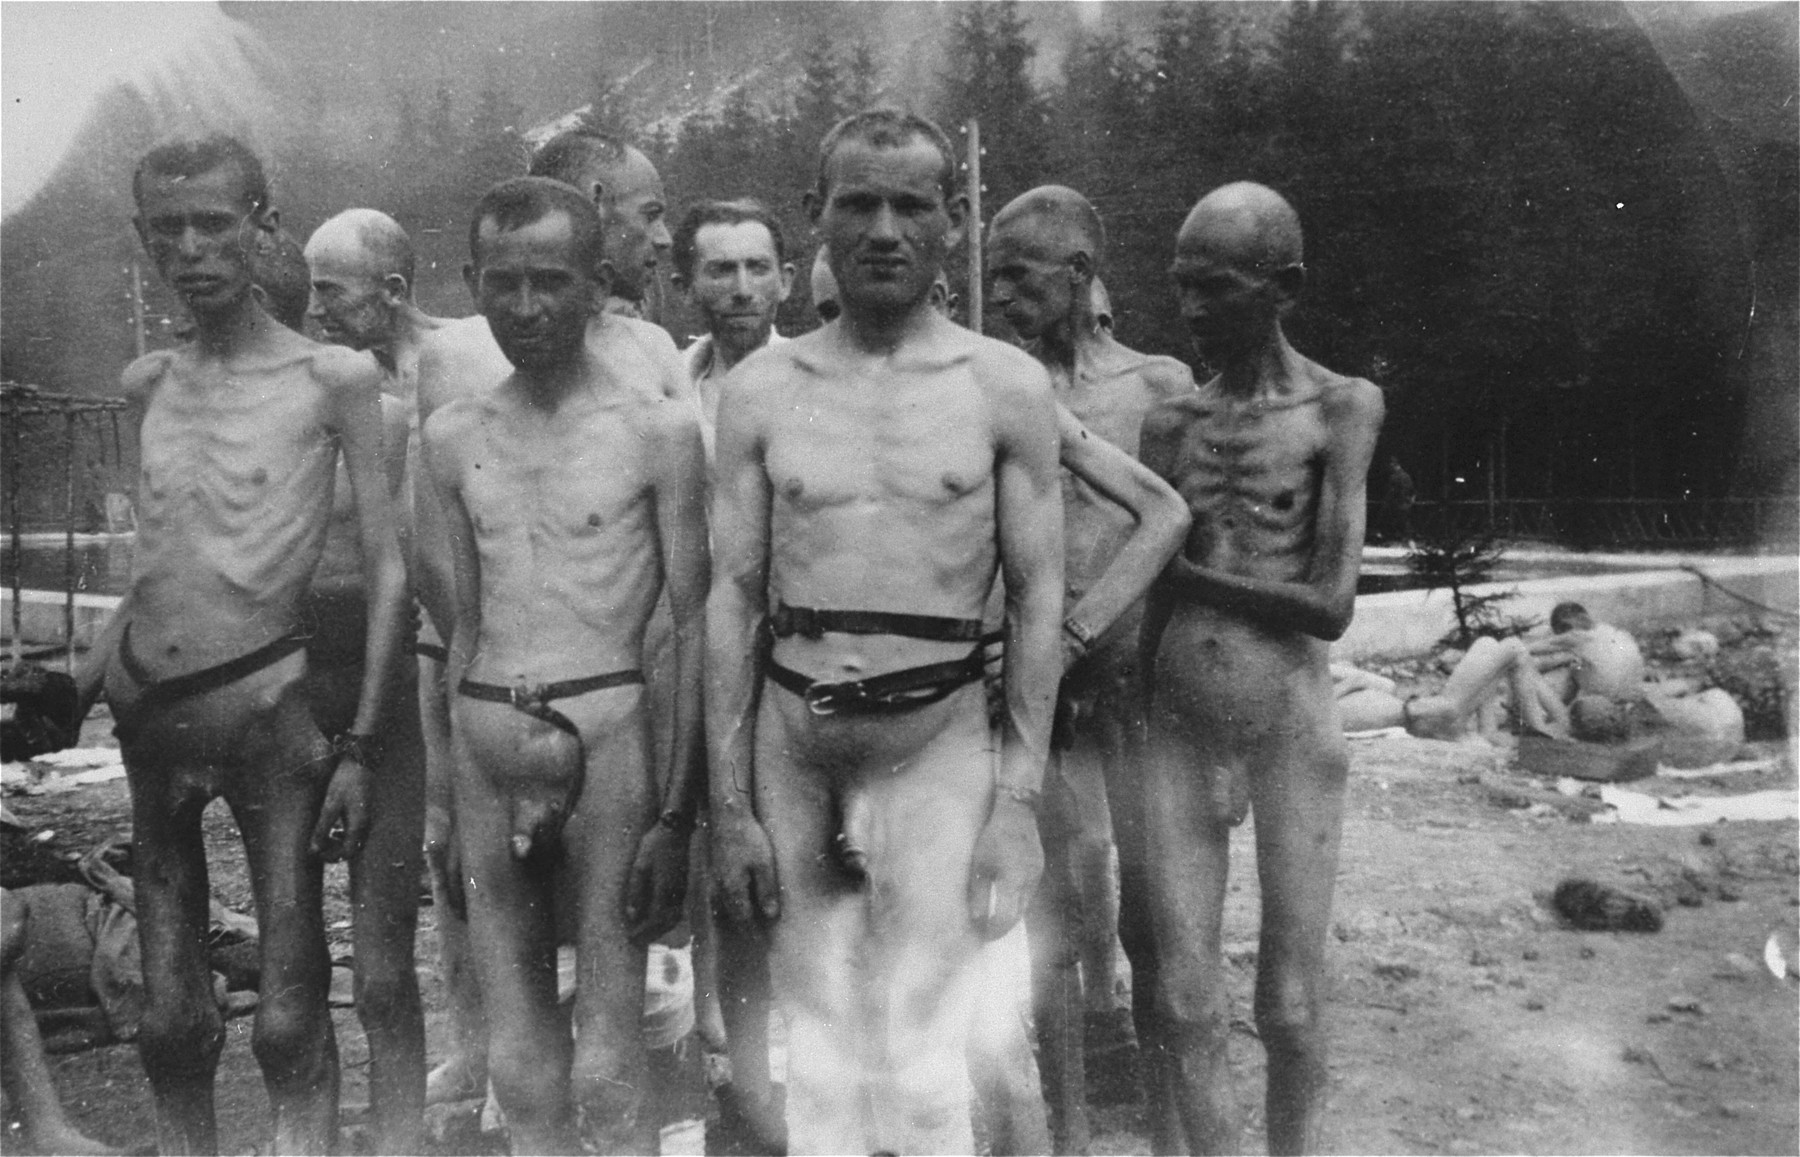 A group of emaciated Jewish survivors stand outside in the Ebensee concentration camp.